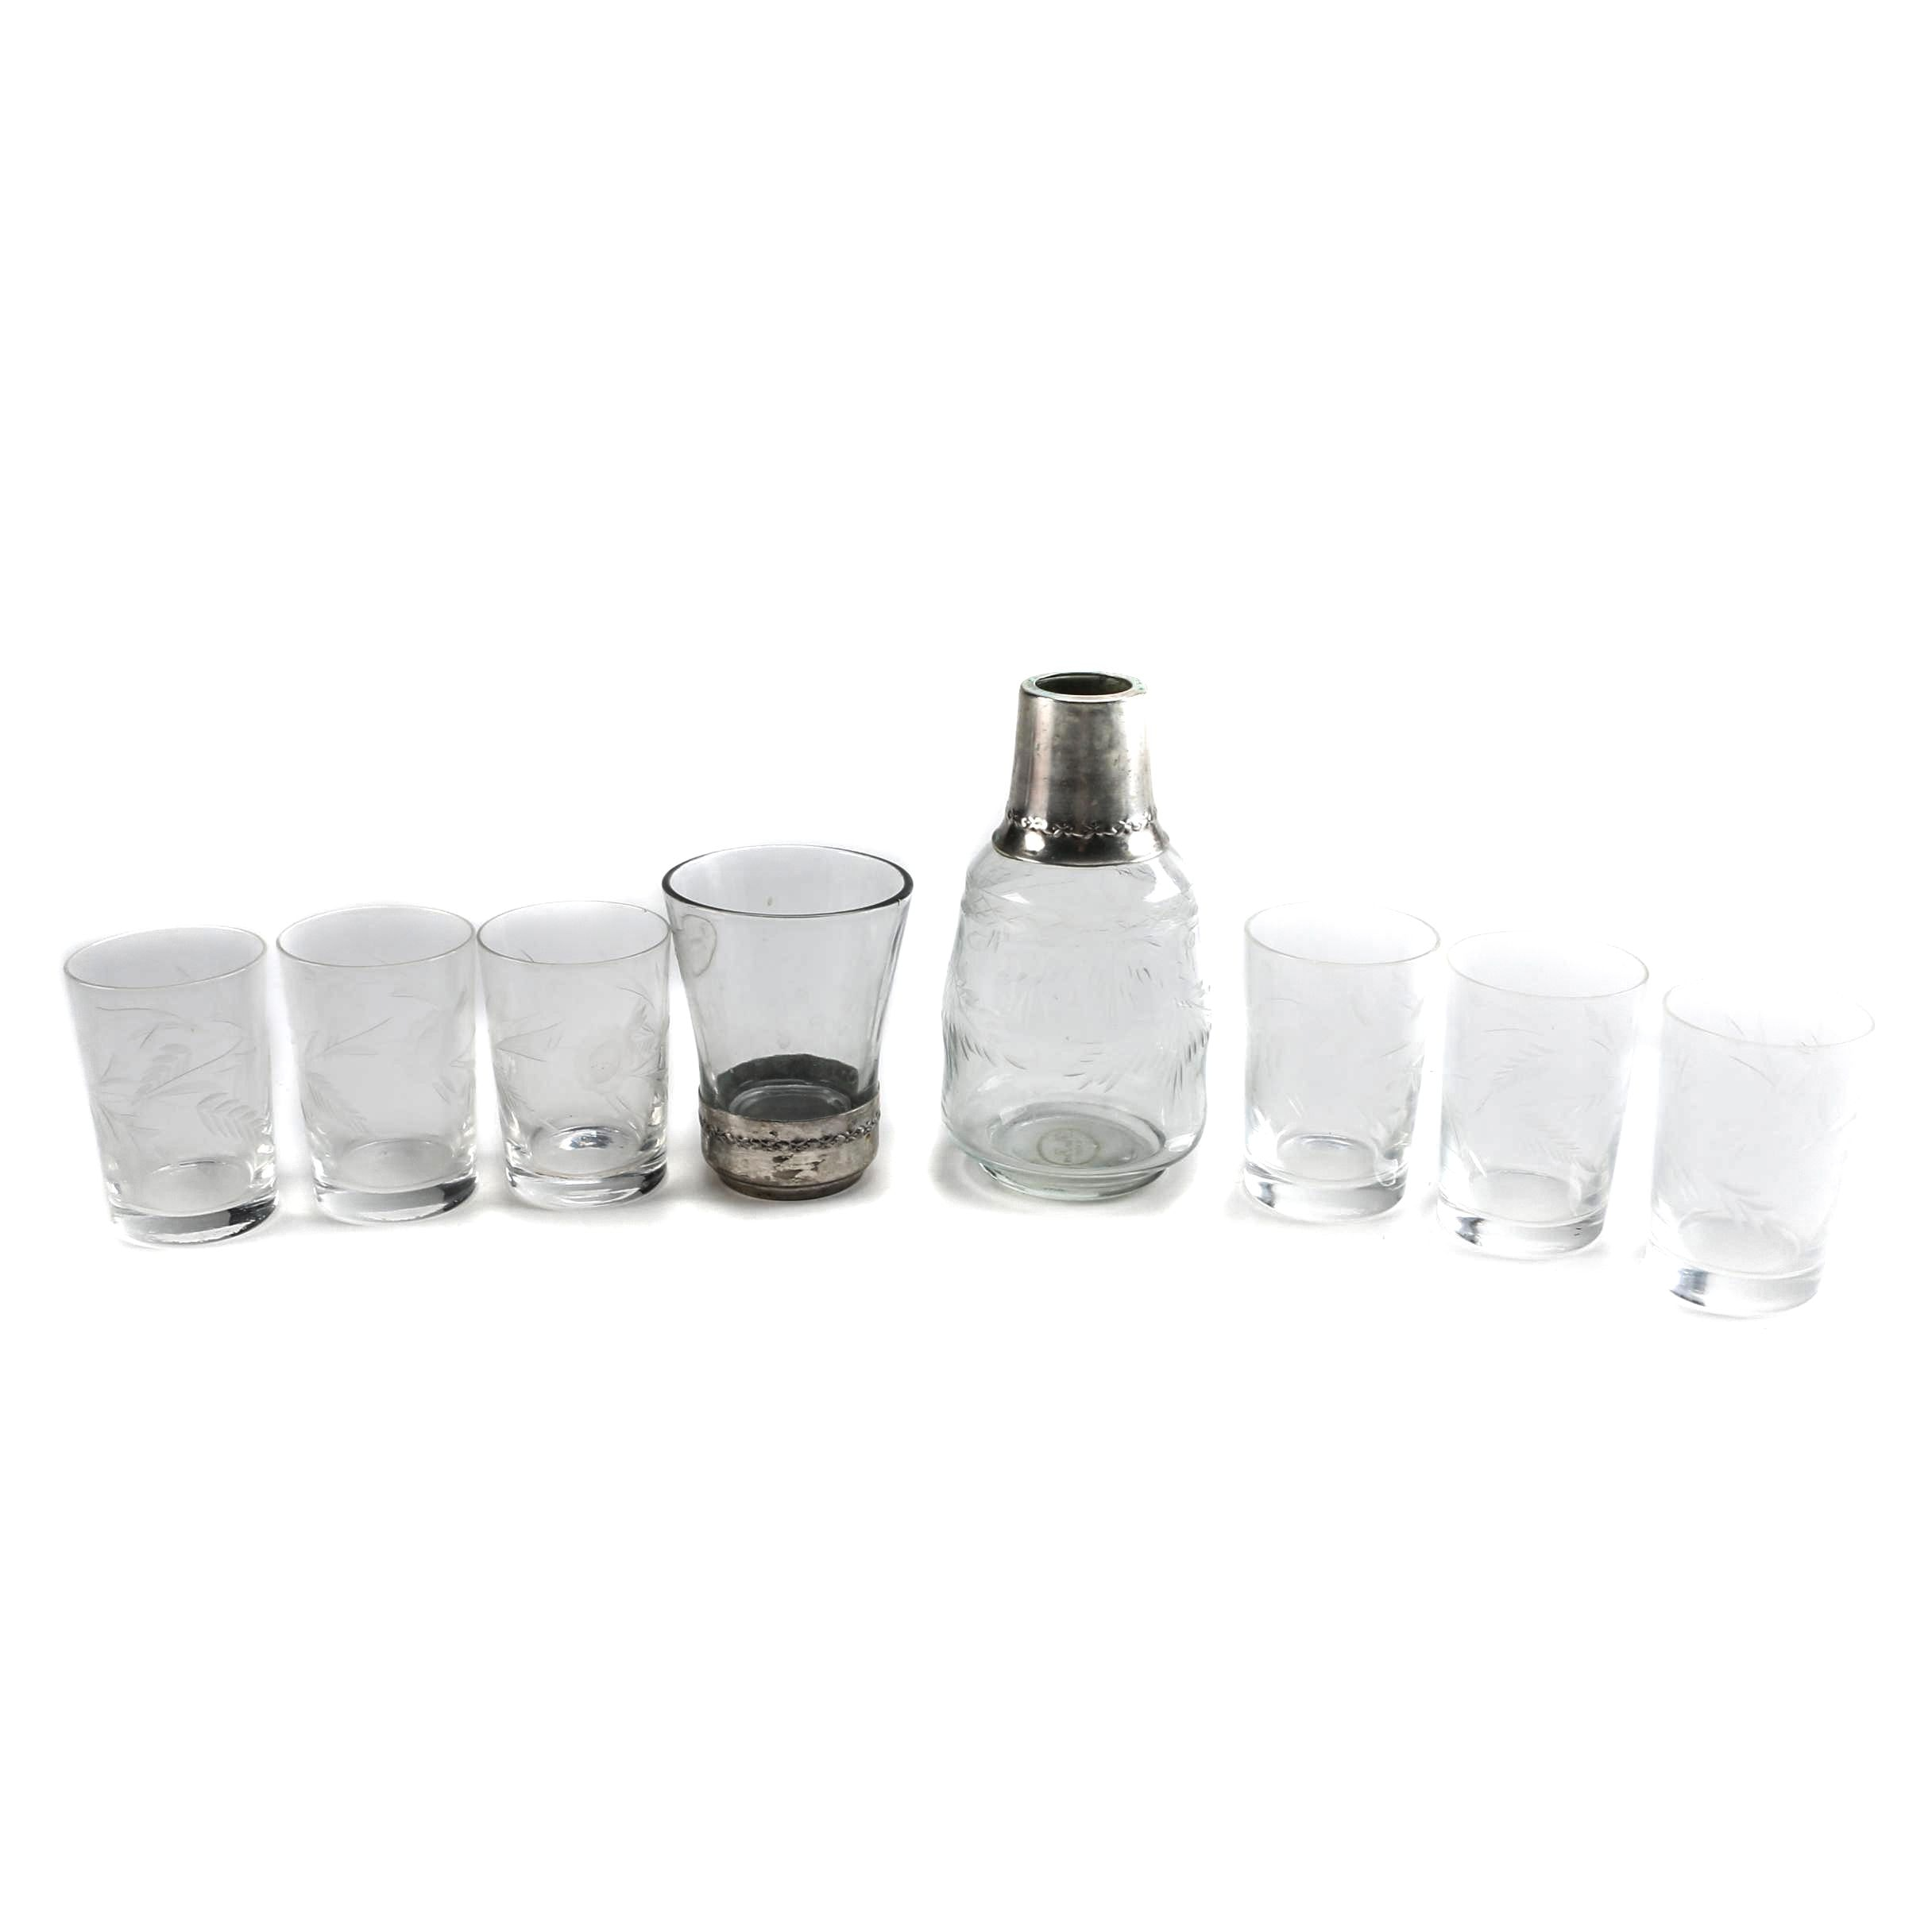 Collection of Etched Glassware and Bedside Carafe by Pom Pom Home